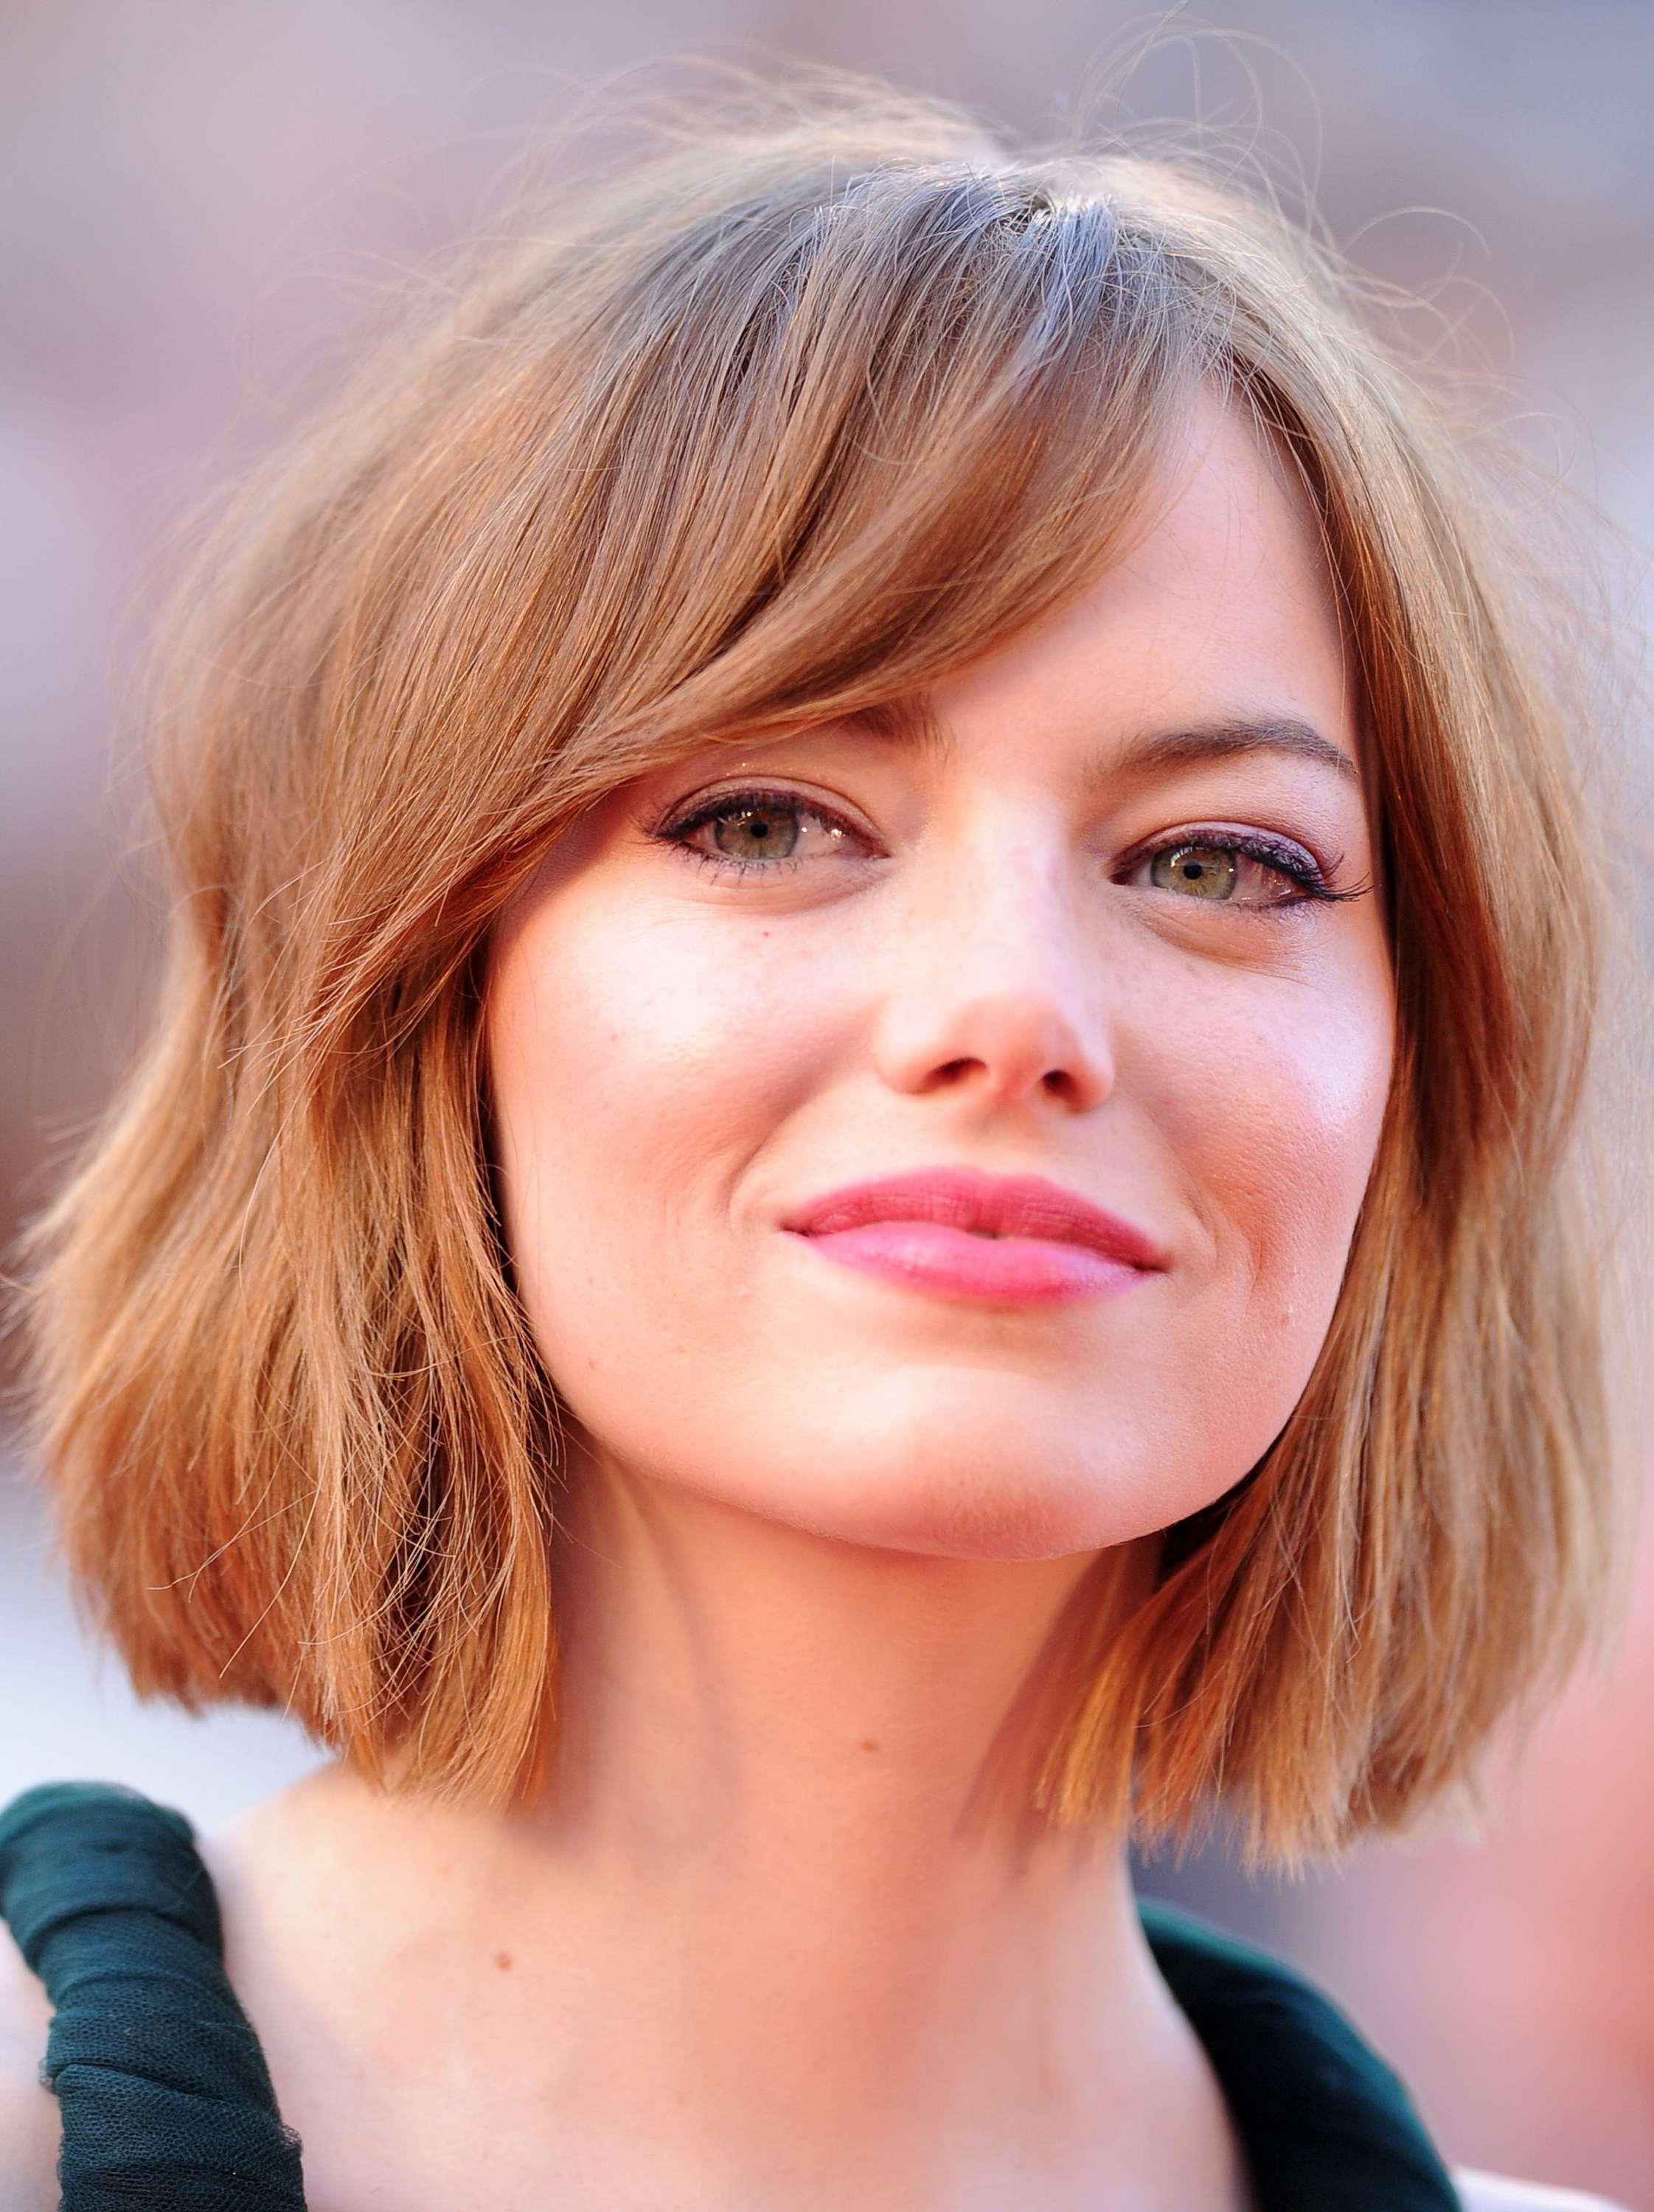 Bob Hairstyles For 2019 – 53 Short Haircut Trends To Try Now Intended For Newest Medium Haircuts Bobs Crops (View 7 of 20)